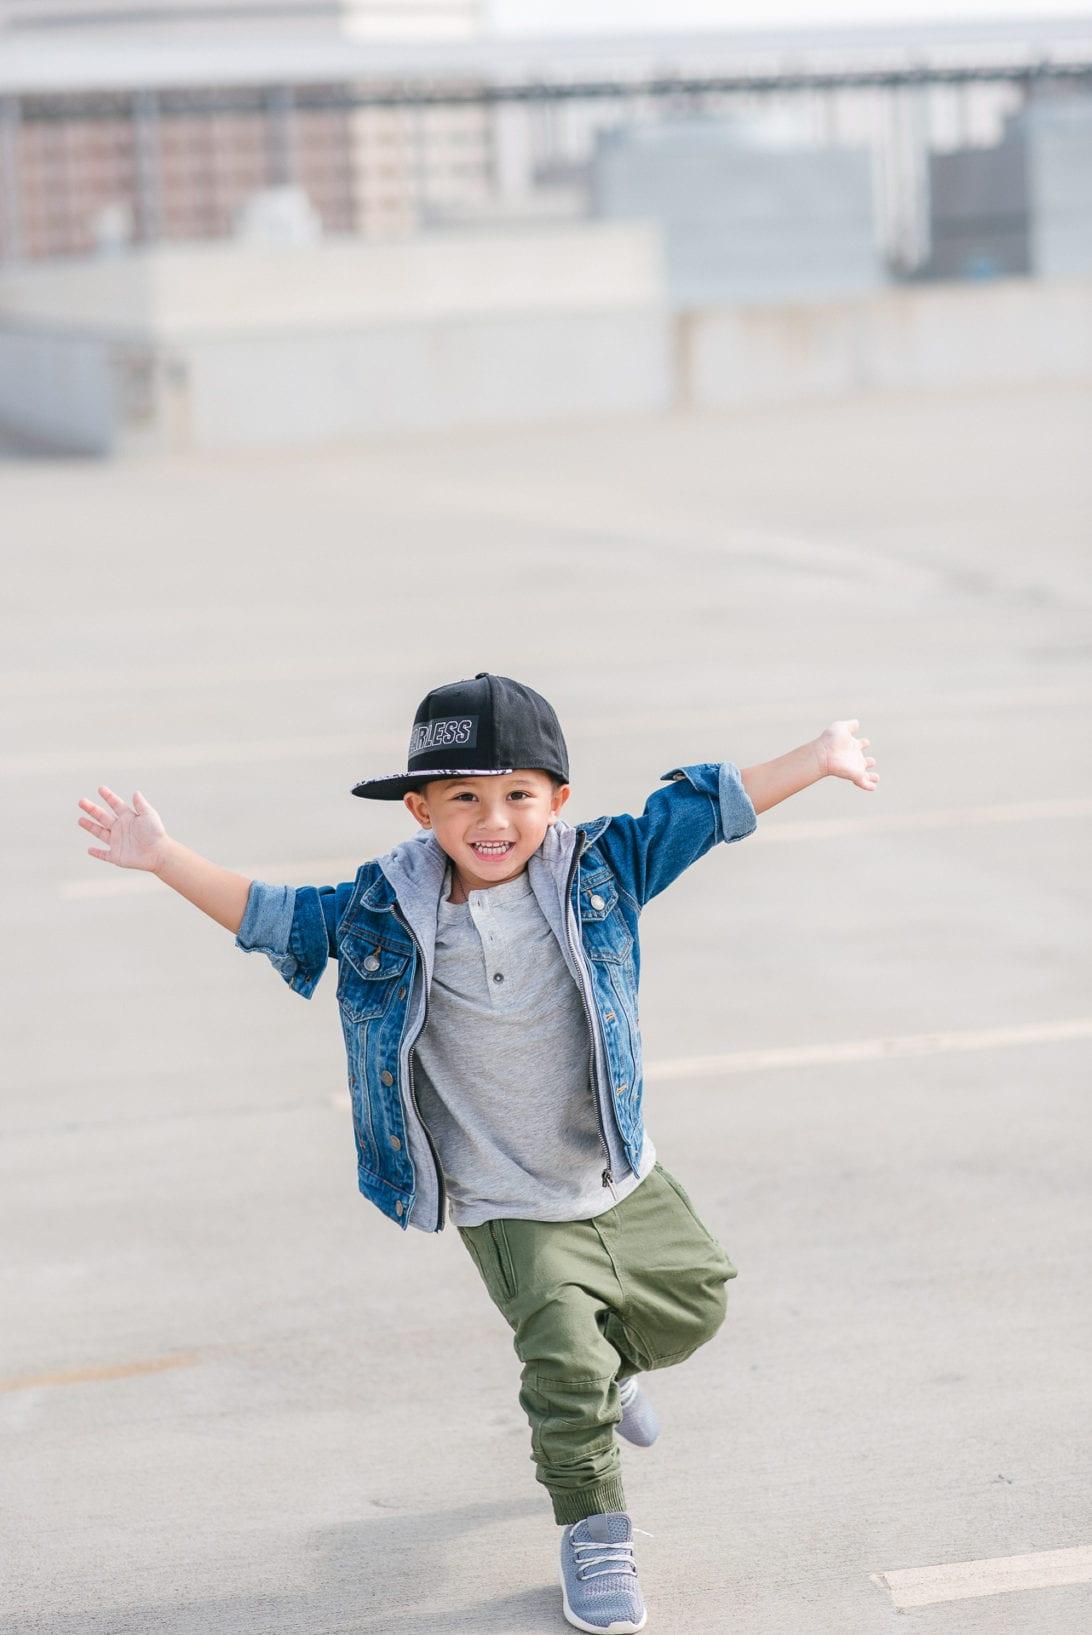 skateboard, toddler fashion, toddler boy style, urban toddler boy fashion, fitness fashion, Lorna Jane Activewear, leopard tights, mommy and me style, mommy and me fashion, #boymom, #houstonblogger, street style, fearless, comfort zone, face your fears